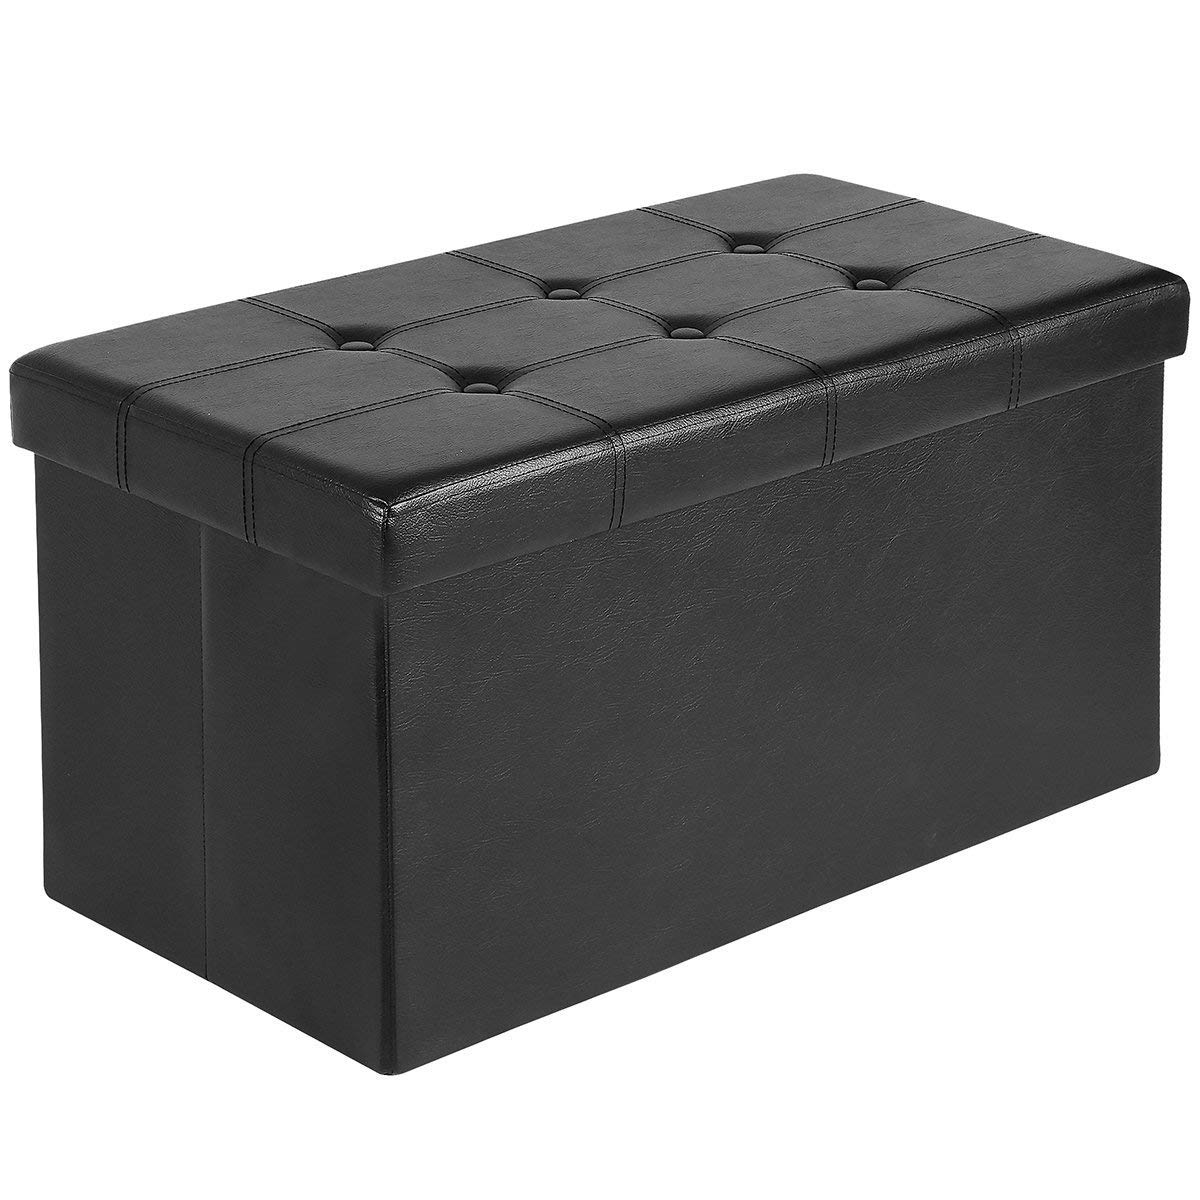 AuAg  30'' Folding Storage Ottoman Bench Faux Leather Toy Box/Chest Window Padded Seat Foot Rest Storage Easy to Assemble (Black, 30'') by AuAg